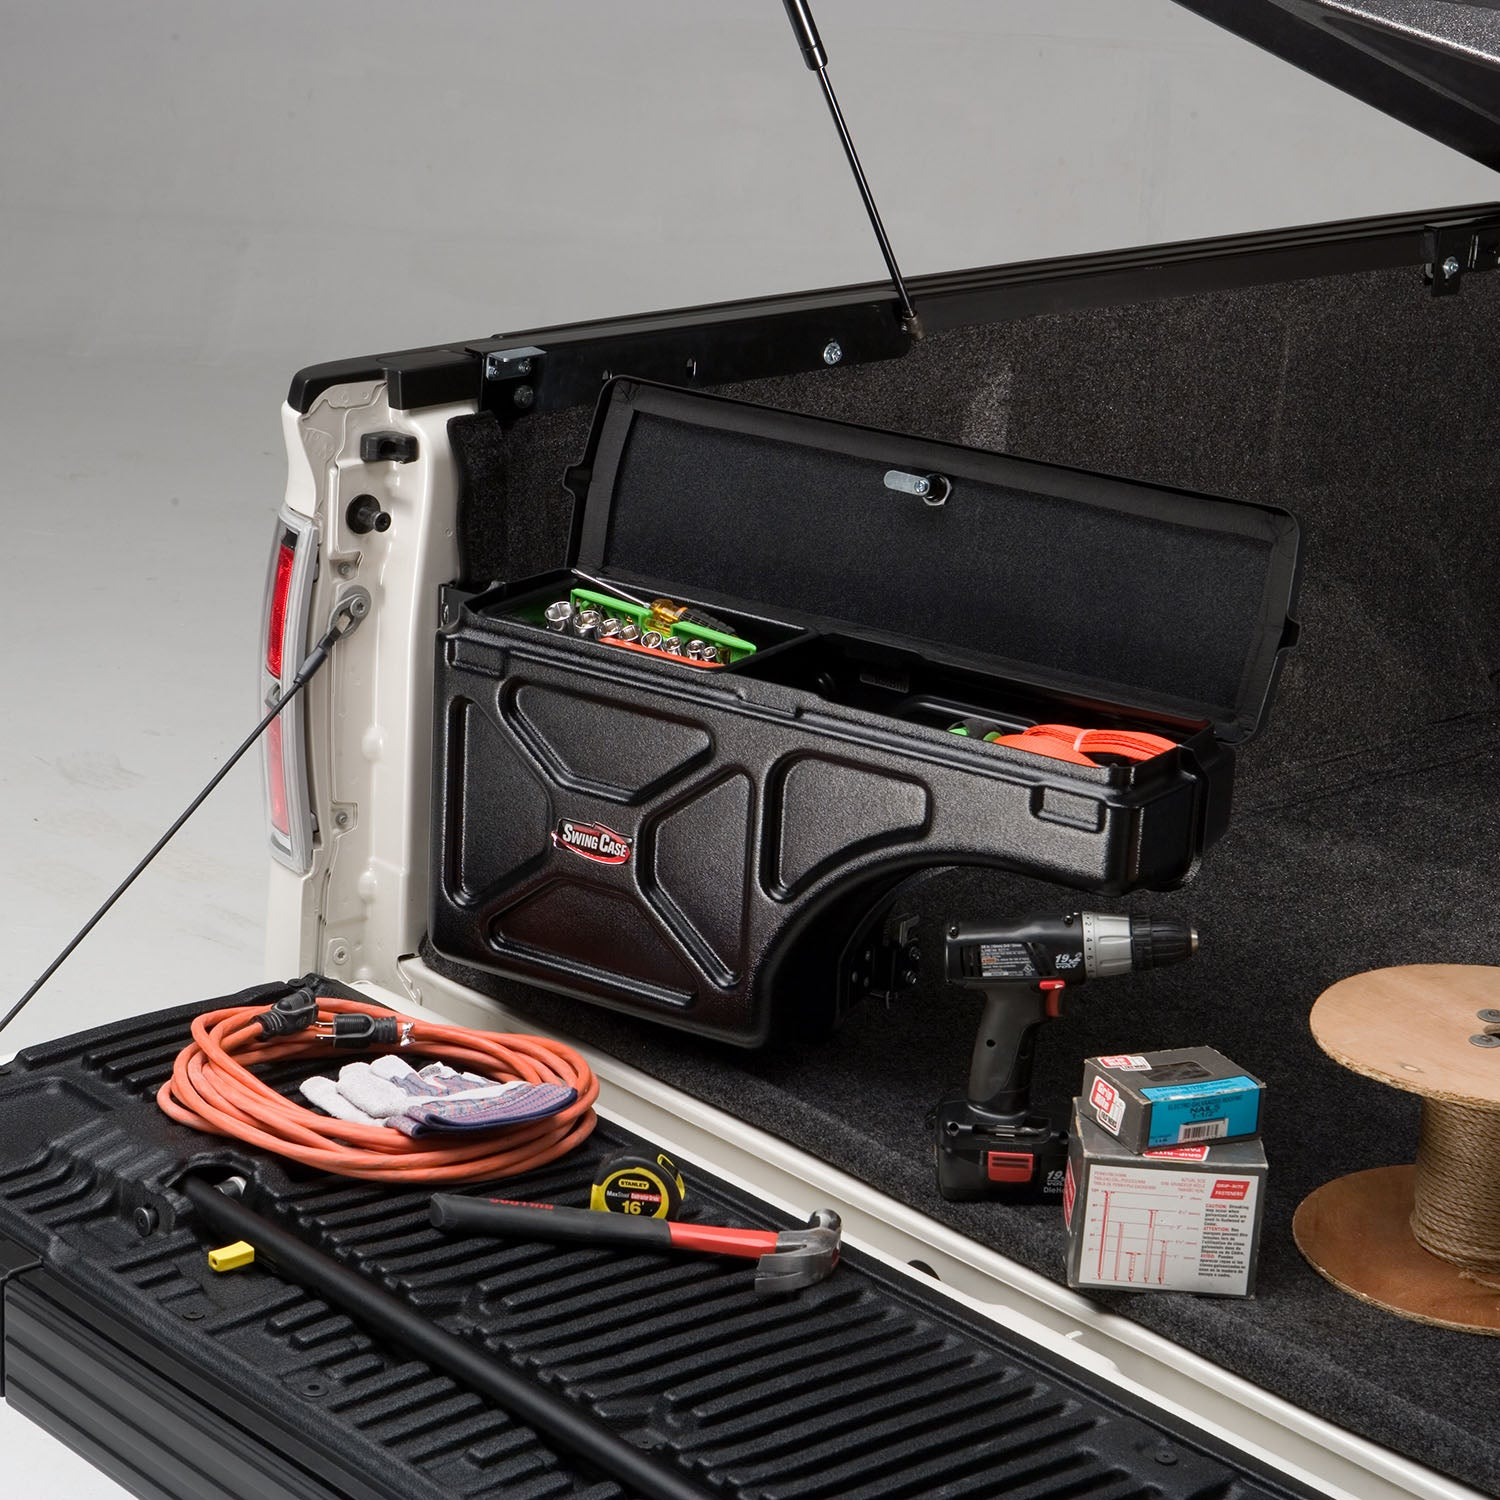 UnderCover SwingCase - Better Storage Within Your Reach.